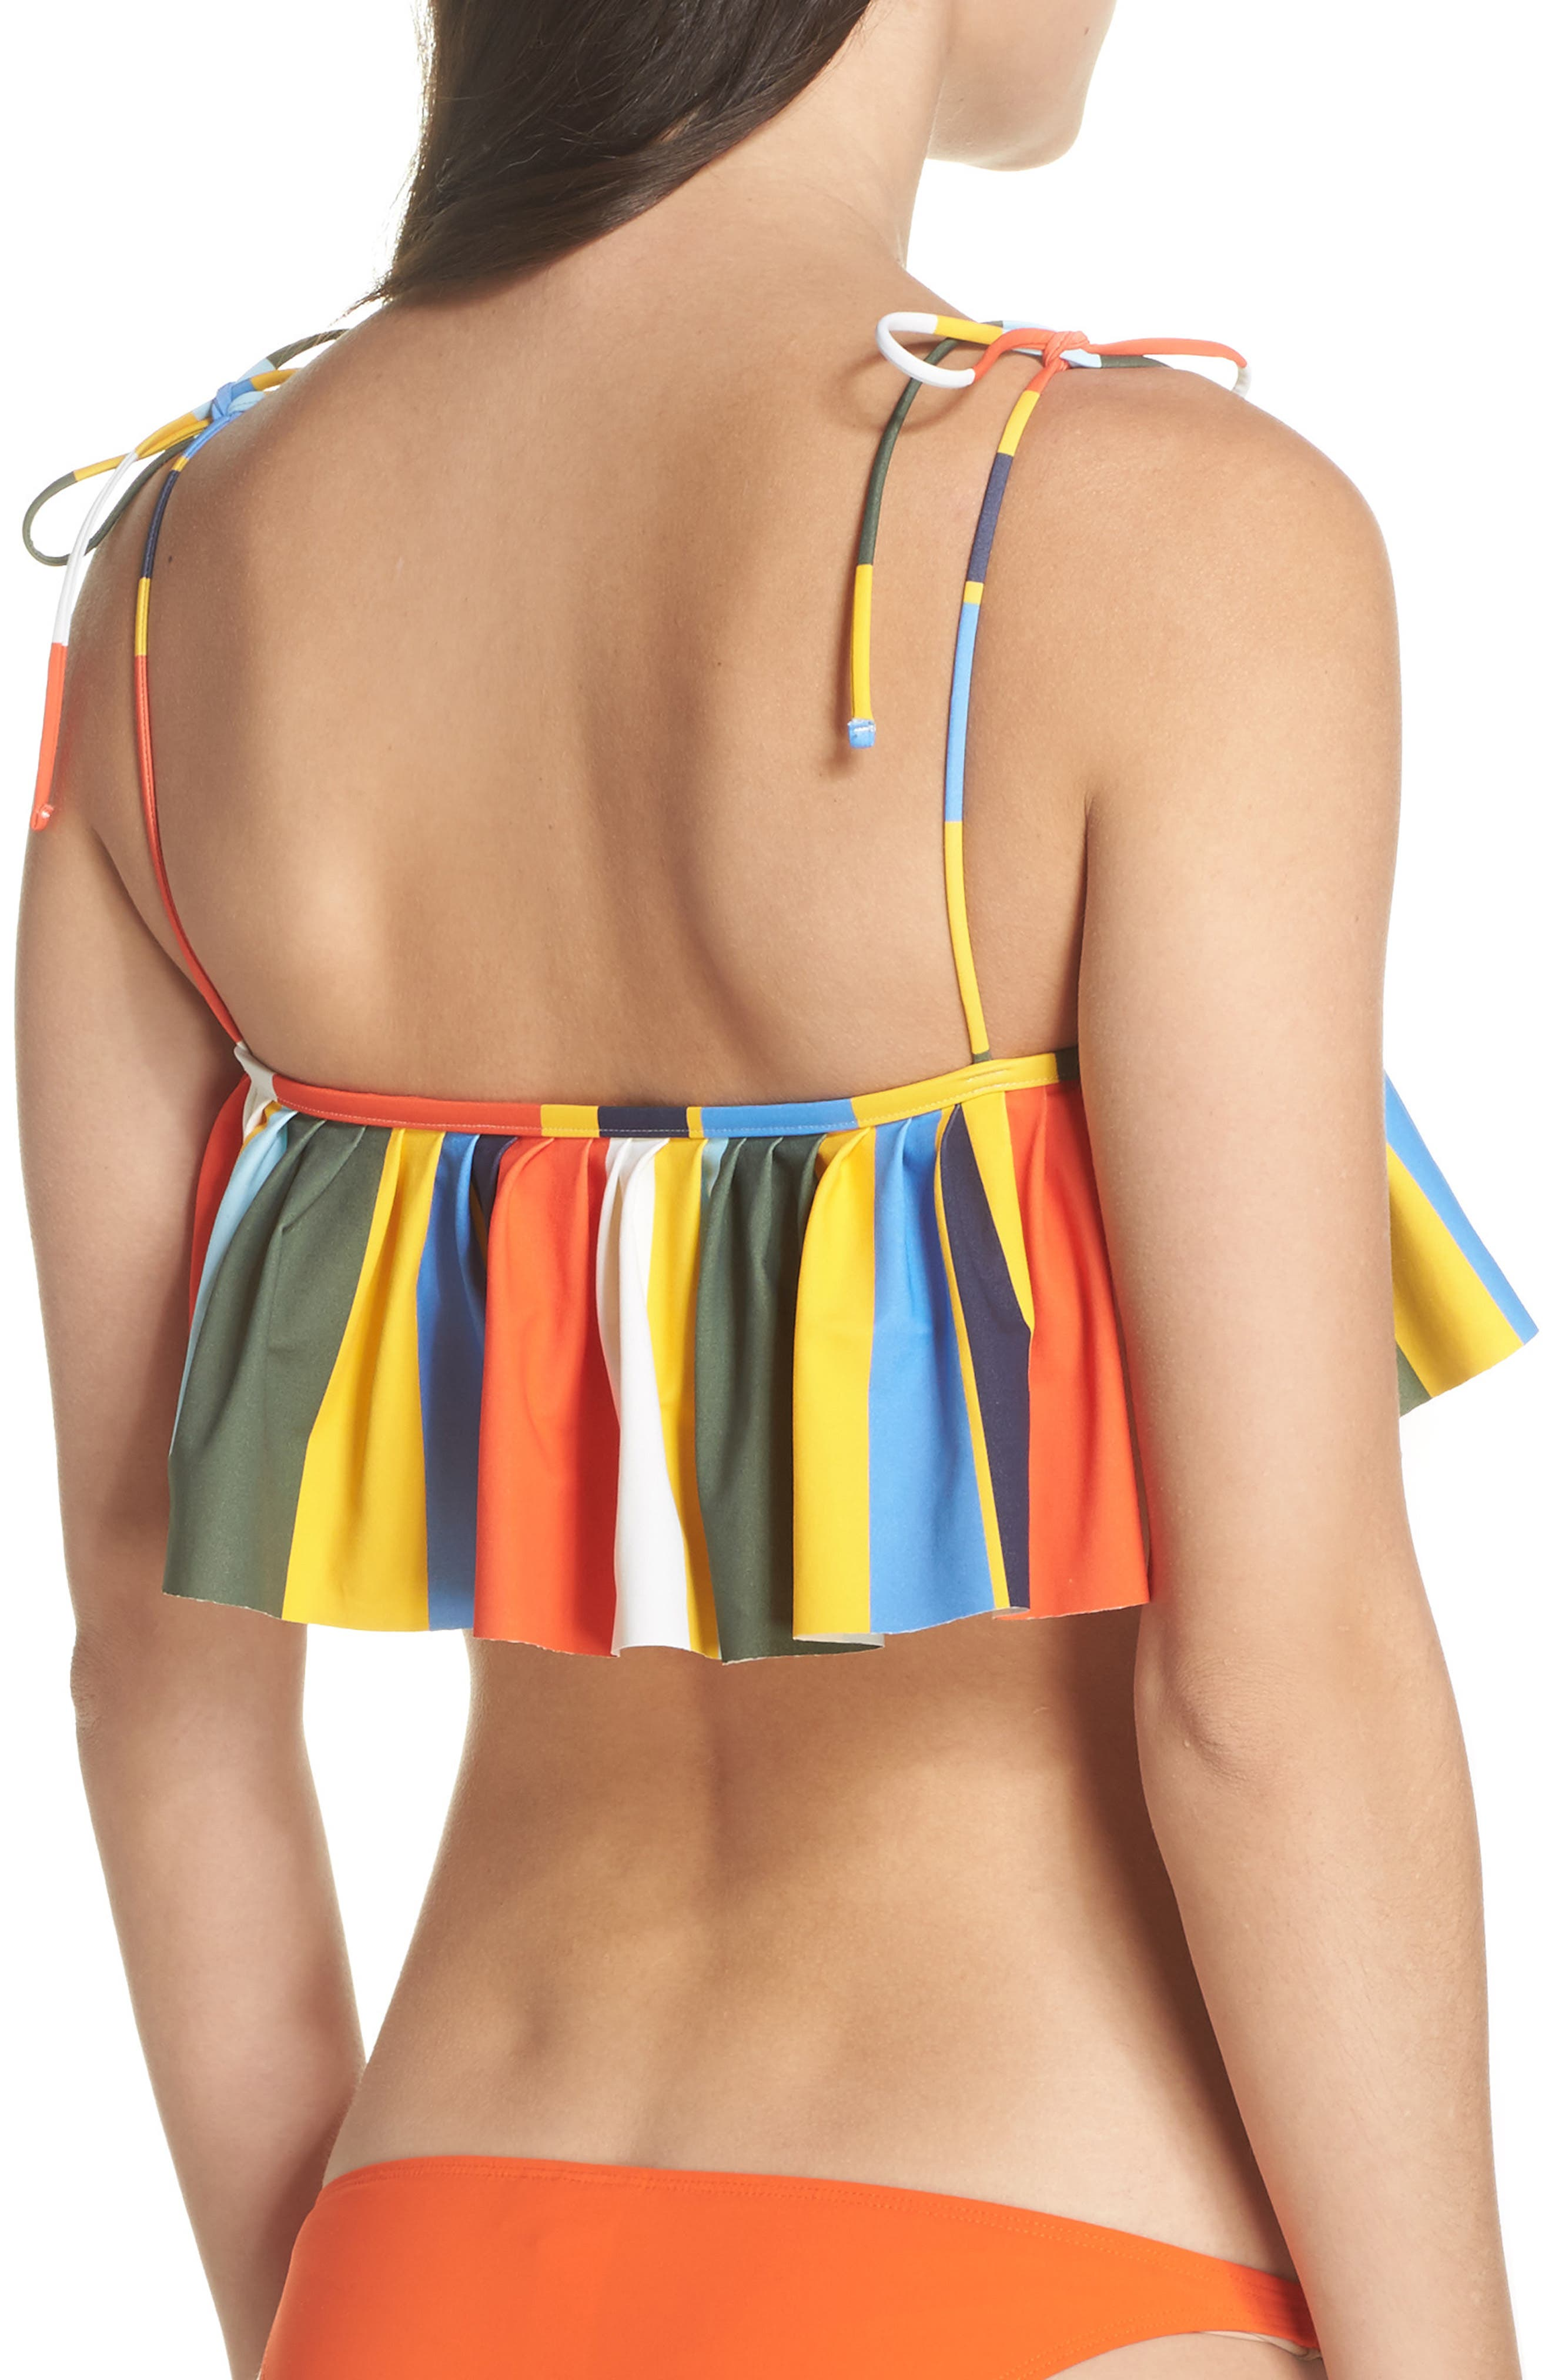 Alternate Image 2  - Tory Burch Balloon Stripe Flounce Bikini Top